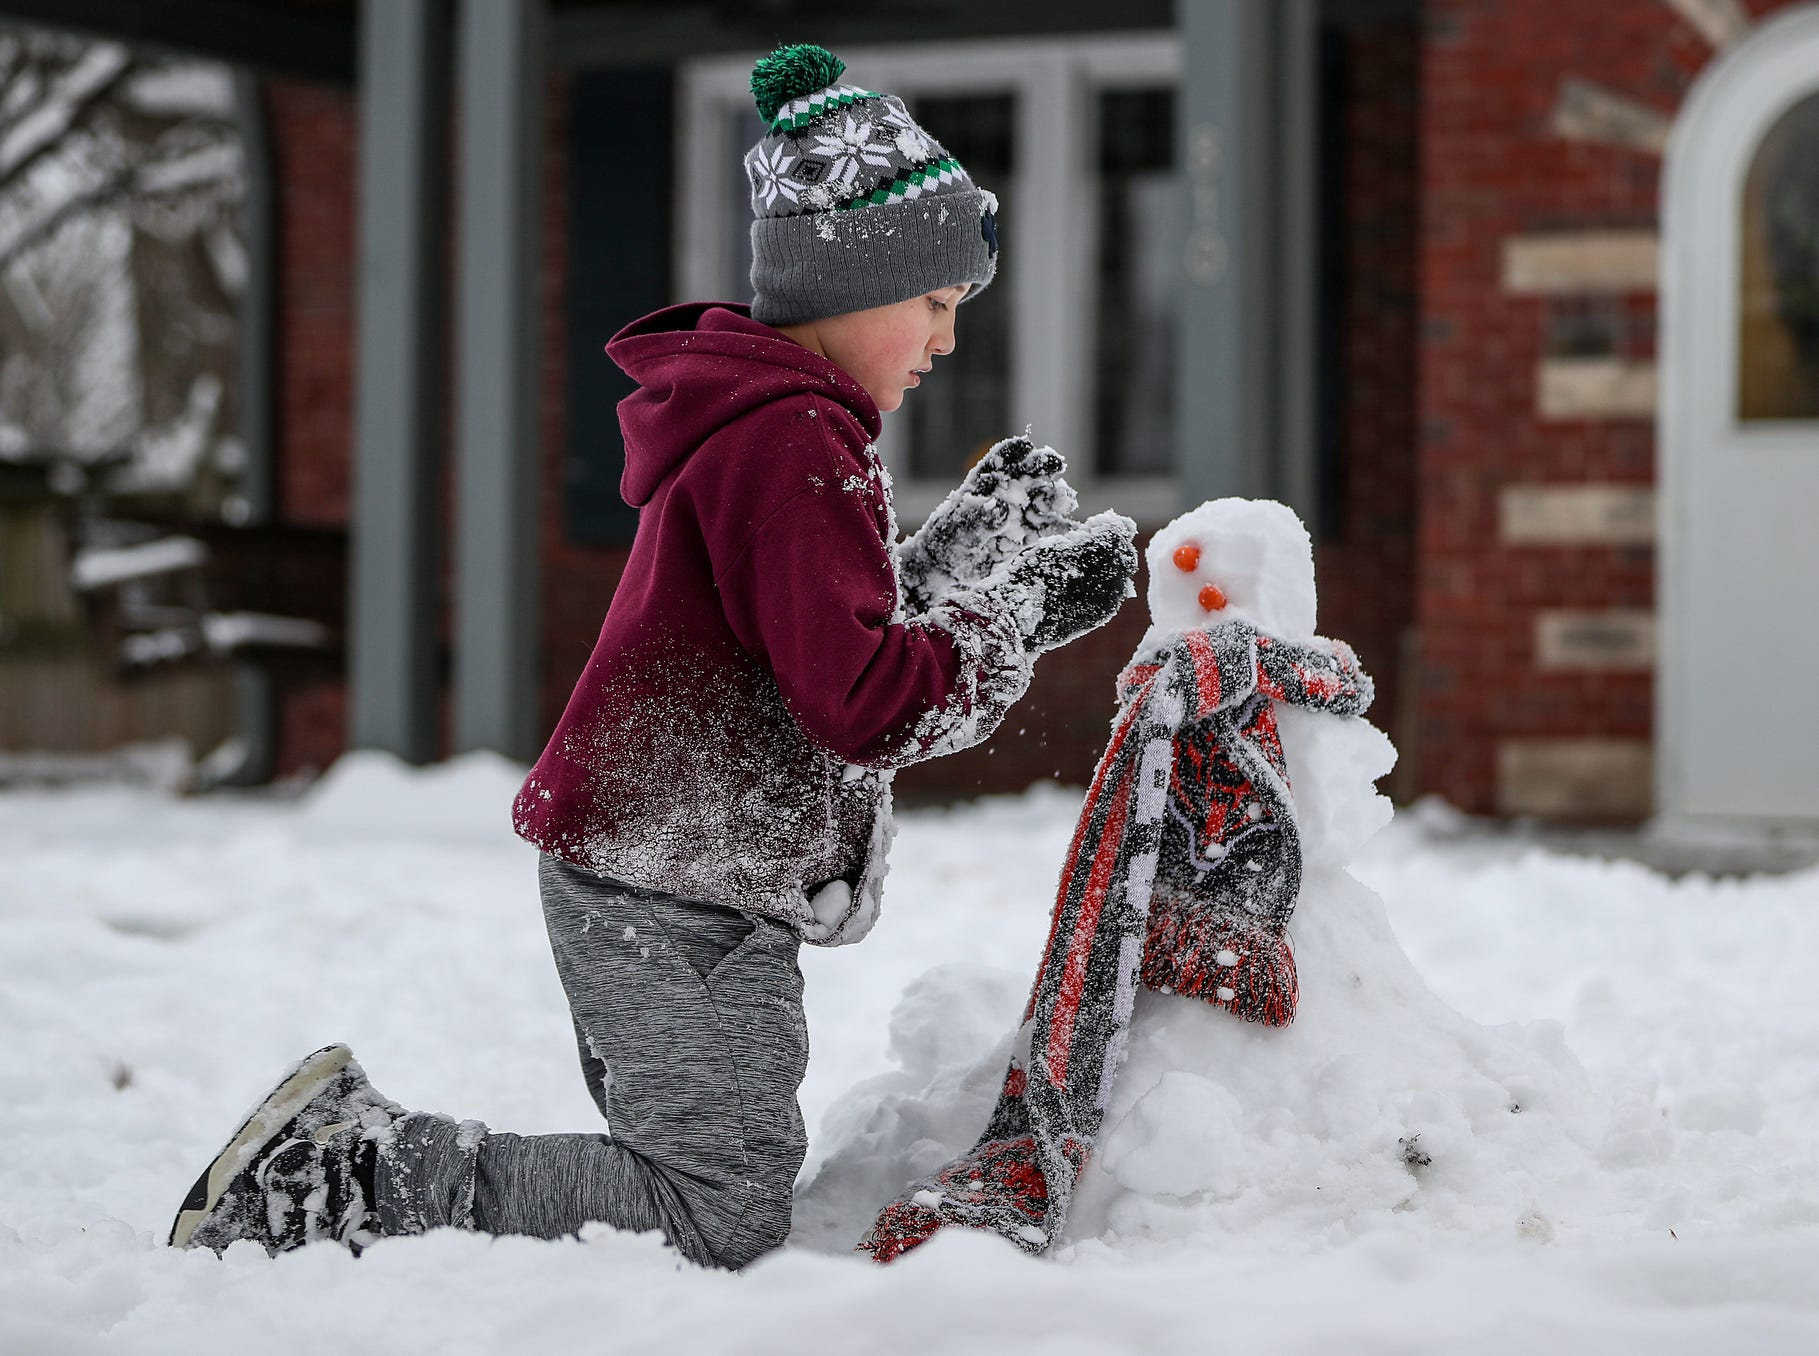 Evan Bollenbacher, 8, builds a snowman in the front yard of his eastside home in Indianapolis, Sunday, Jan. 13, 2019. Saturday's storm left Indianapolis blanketed in more than 7 inches of snow.